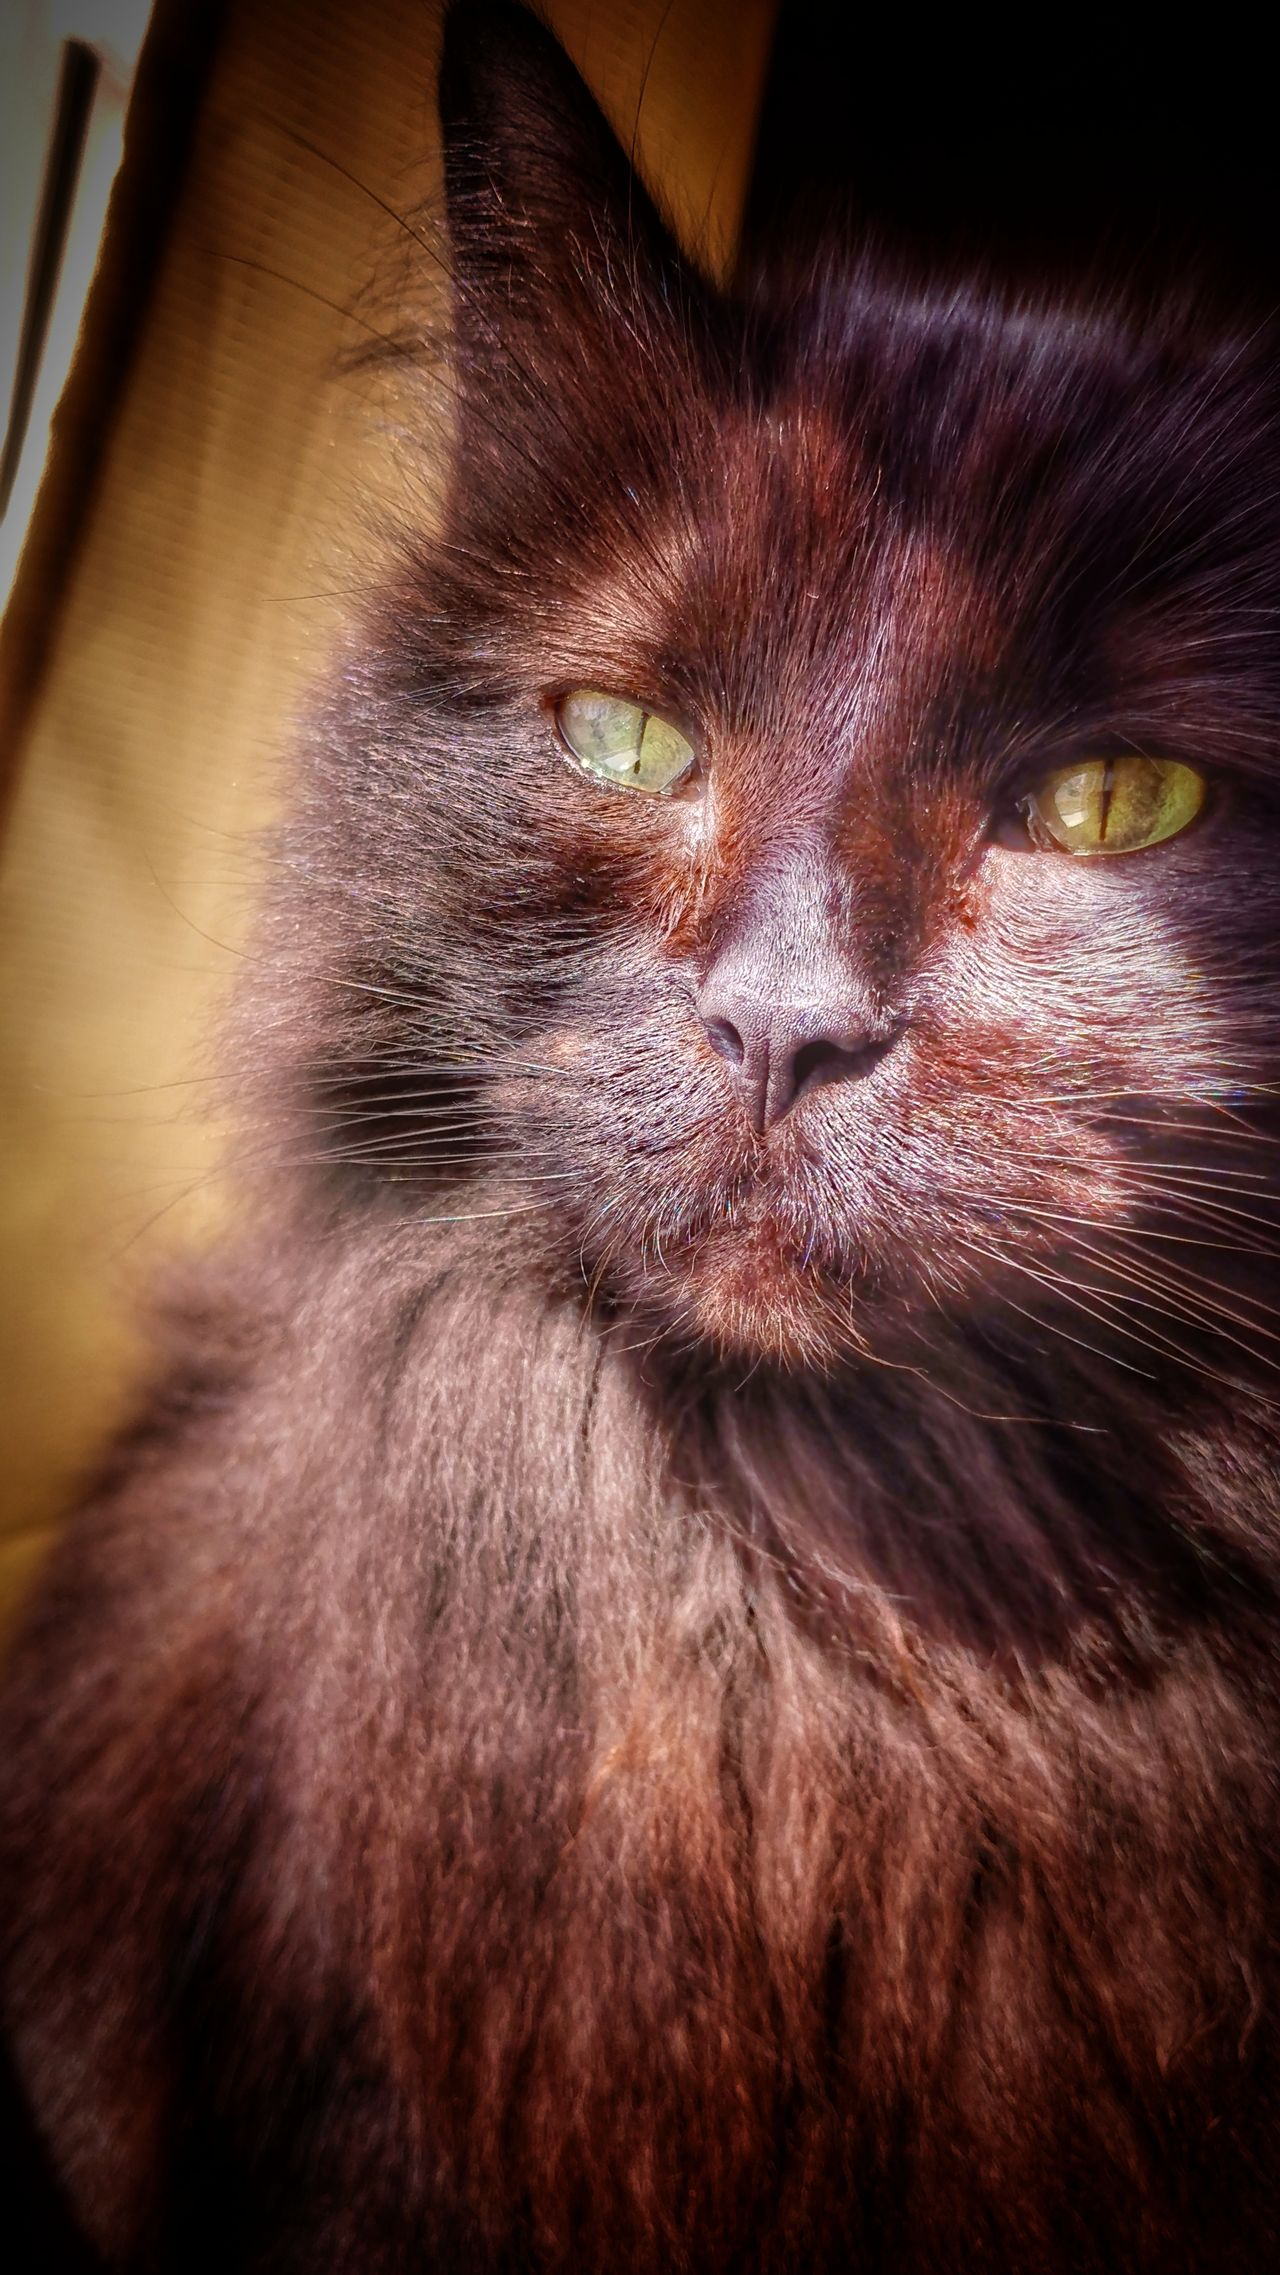 One Animal Domestic Cat Pets Animal Themes Domestic Animals Feline Mammal Close-up No People Whisker Indoors  Portrait Nature Day Black Cats Are Beautiful Long Haired Cat